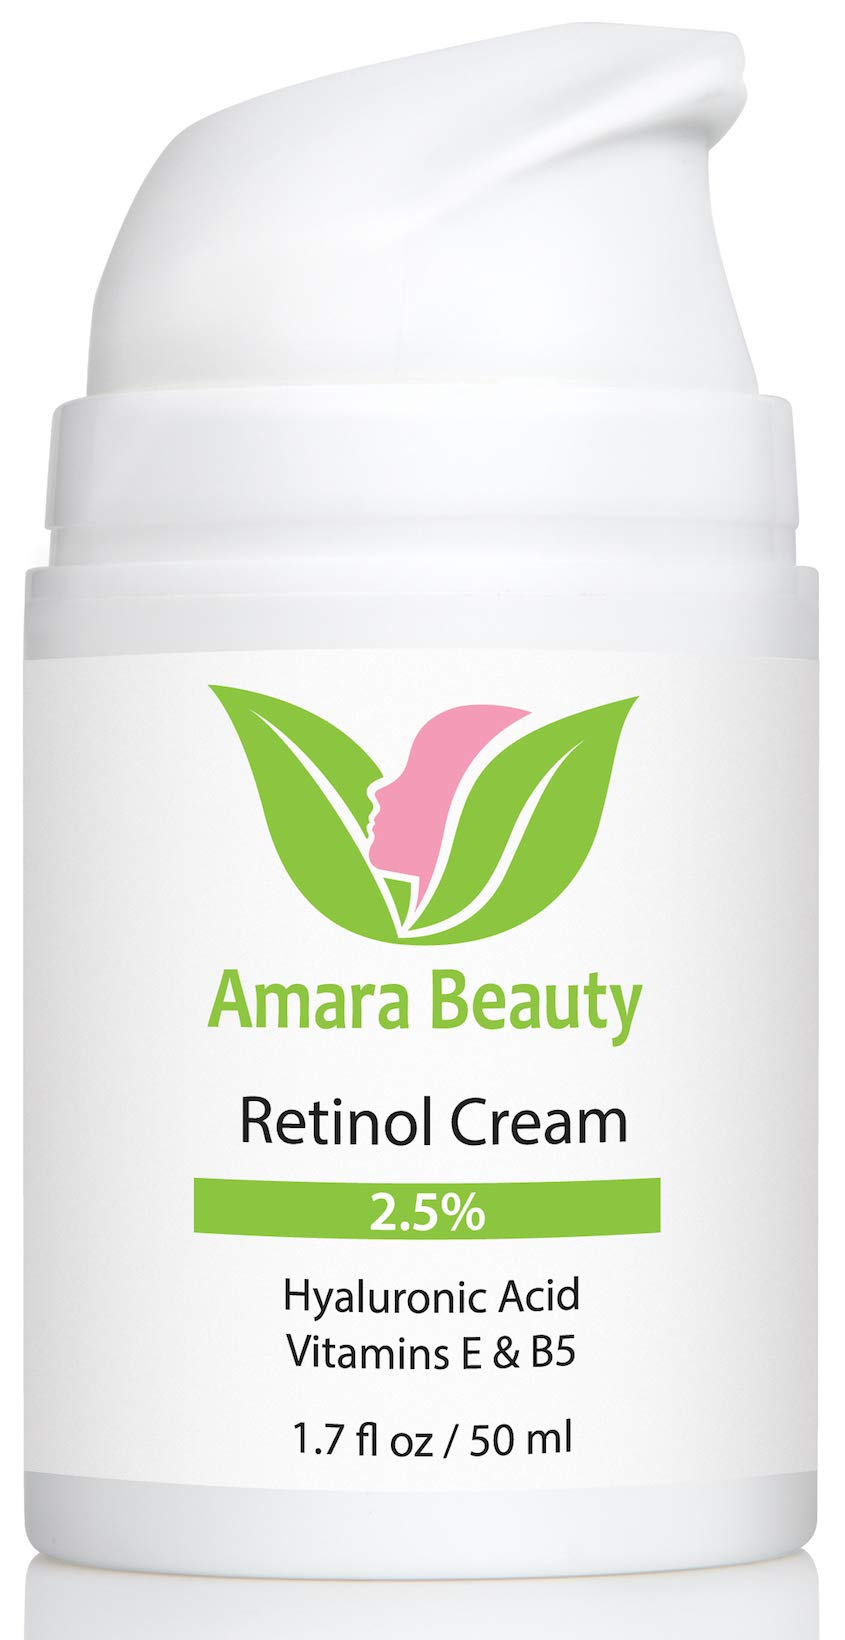 Retinol Cream for Face 2.5% with Hyaluronic Acid & Vitamins E & B5, 1.7 fl. oz. by Amara Beauty